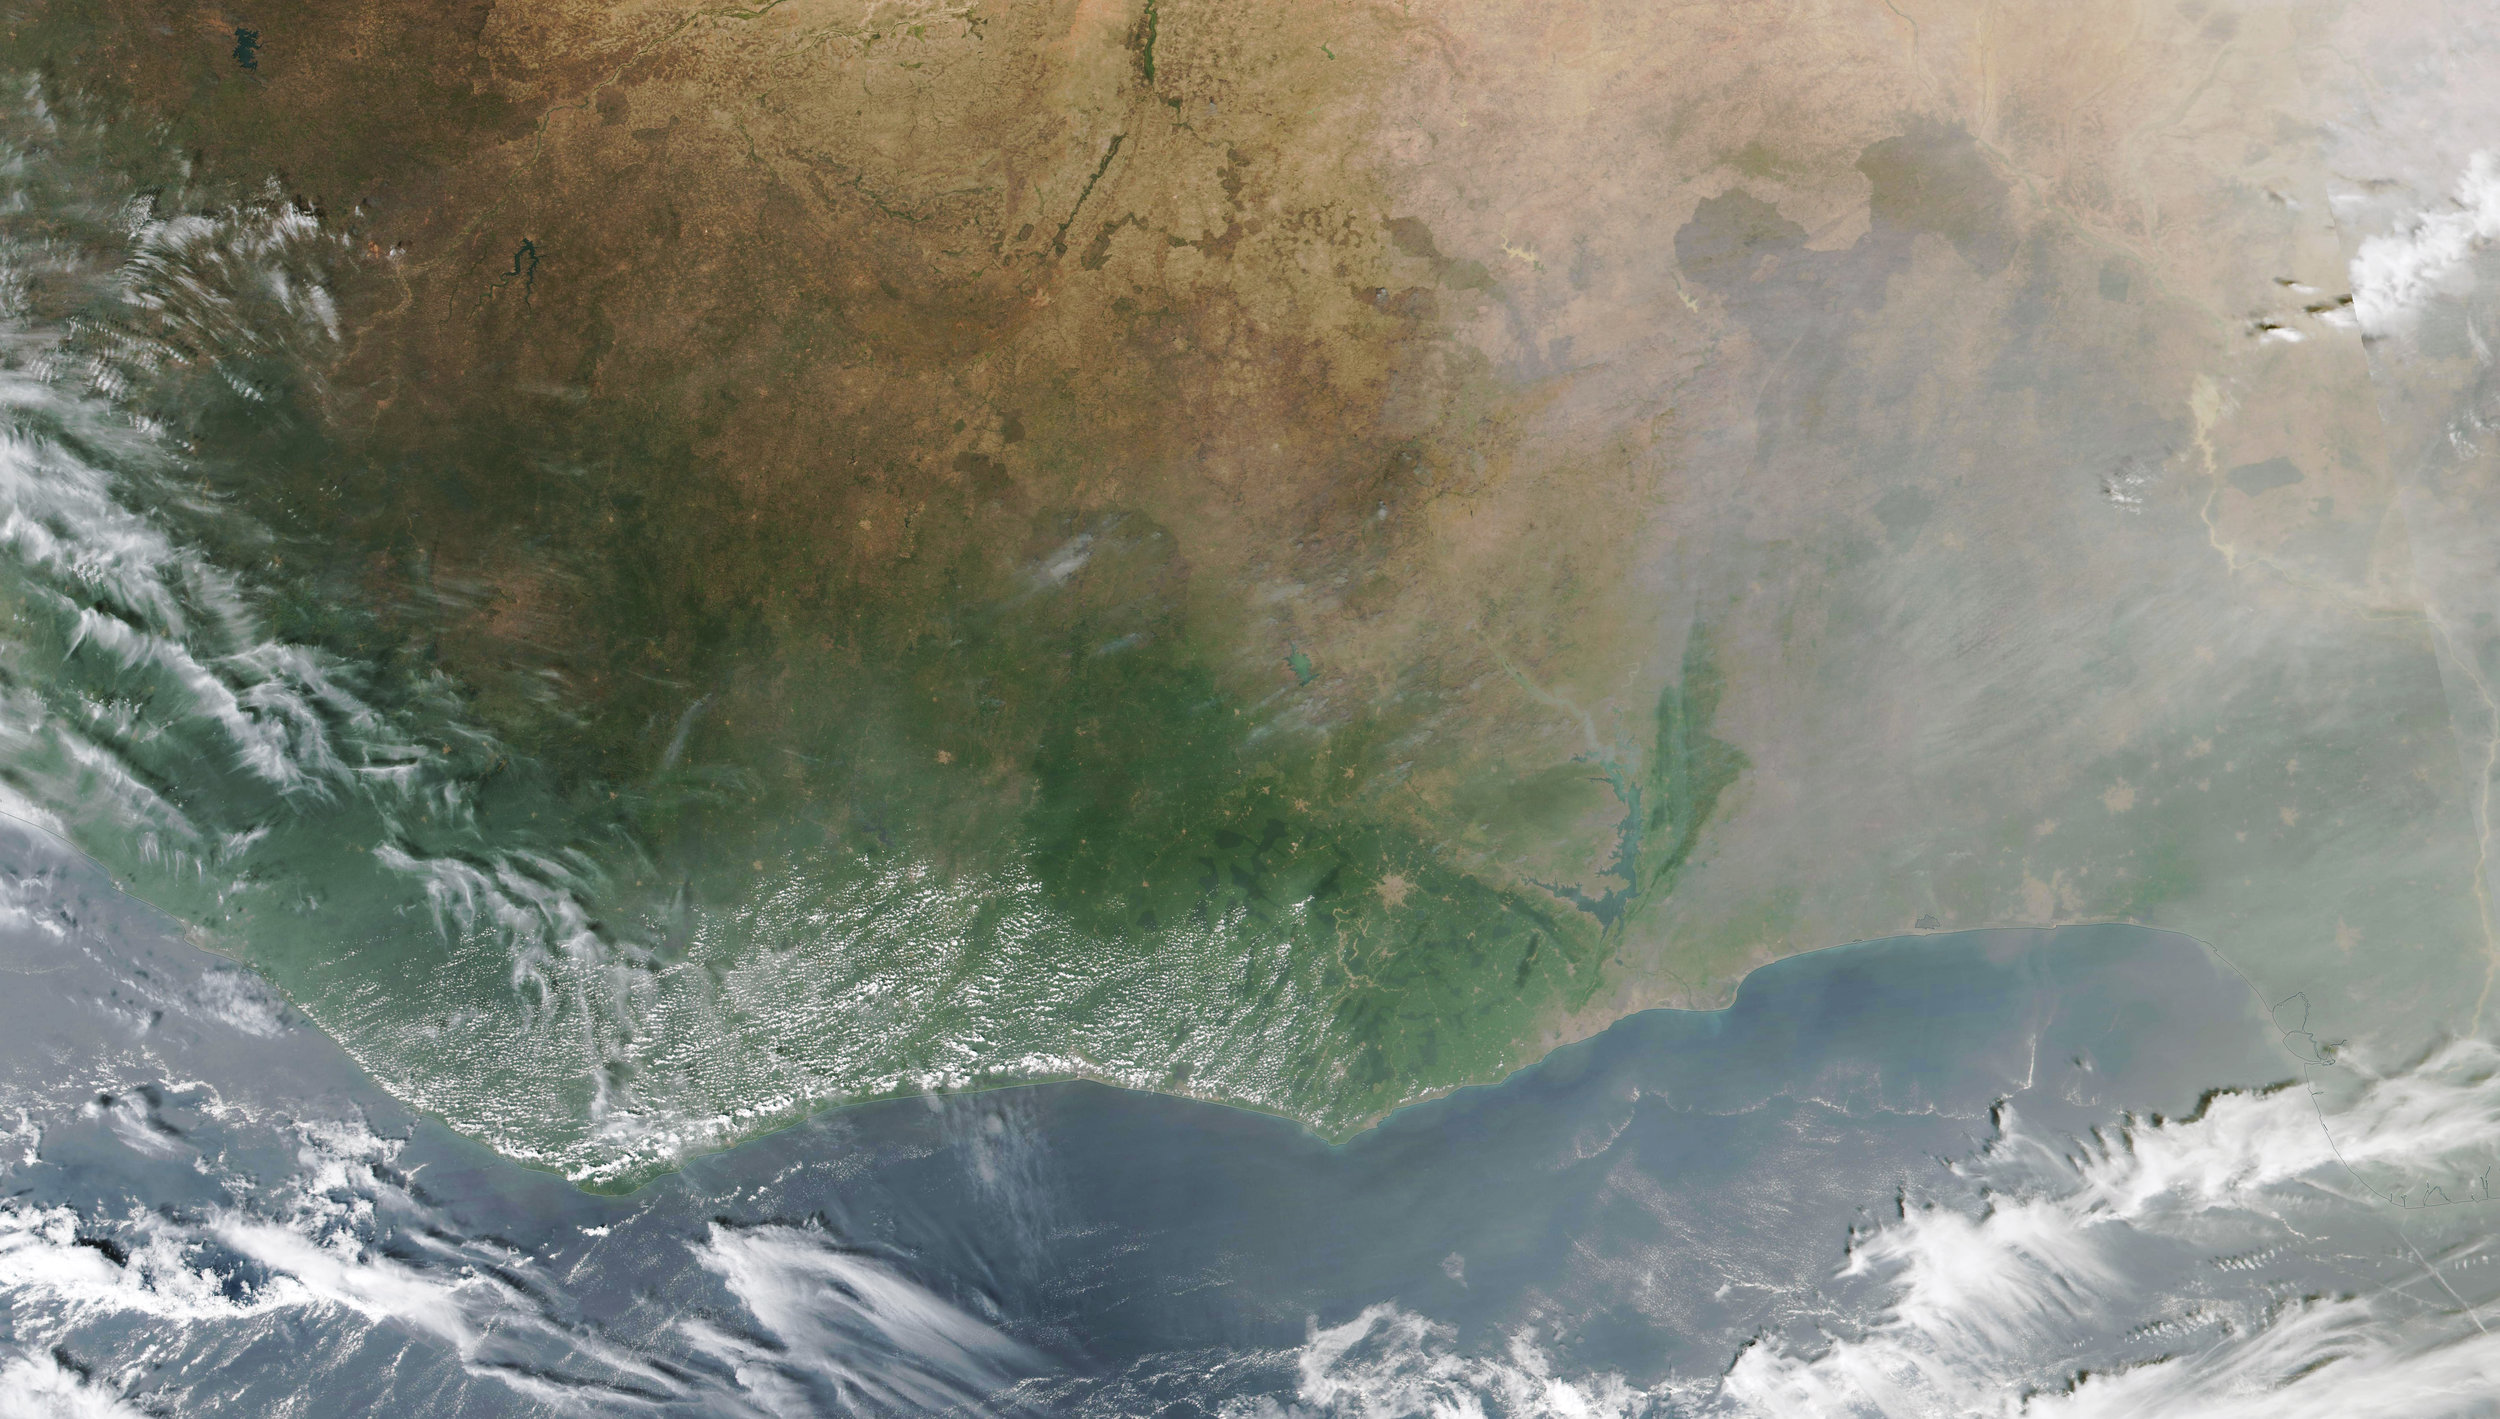 Numerous fires create a smoky pall over the skies of western Africa. The image above was acquired on December 10, 2015. – Image Credits: NASA Earth Observatory image by Joshua Stevens, using VIIRS data from Suomi NPP